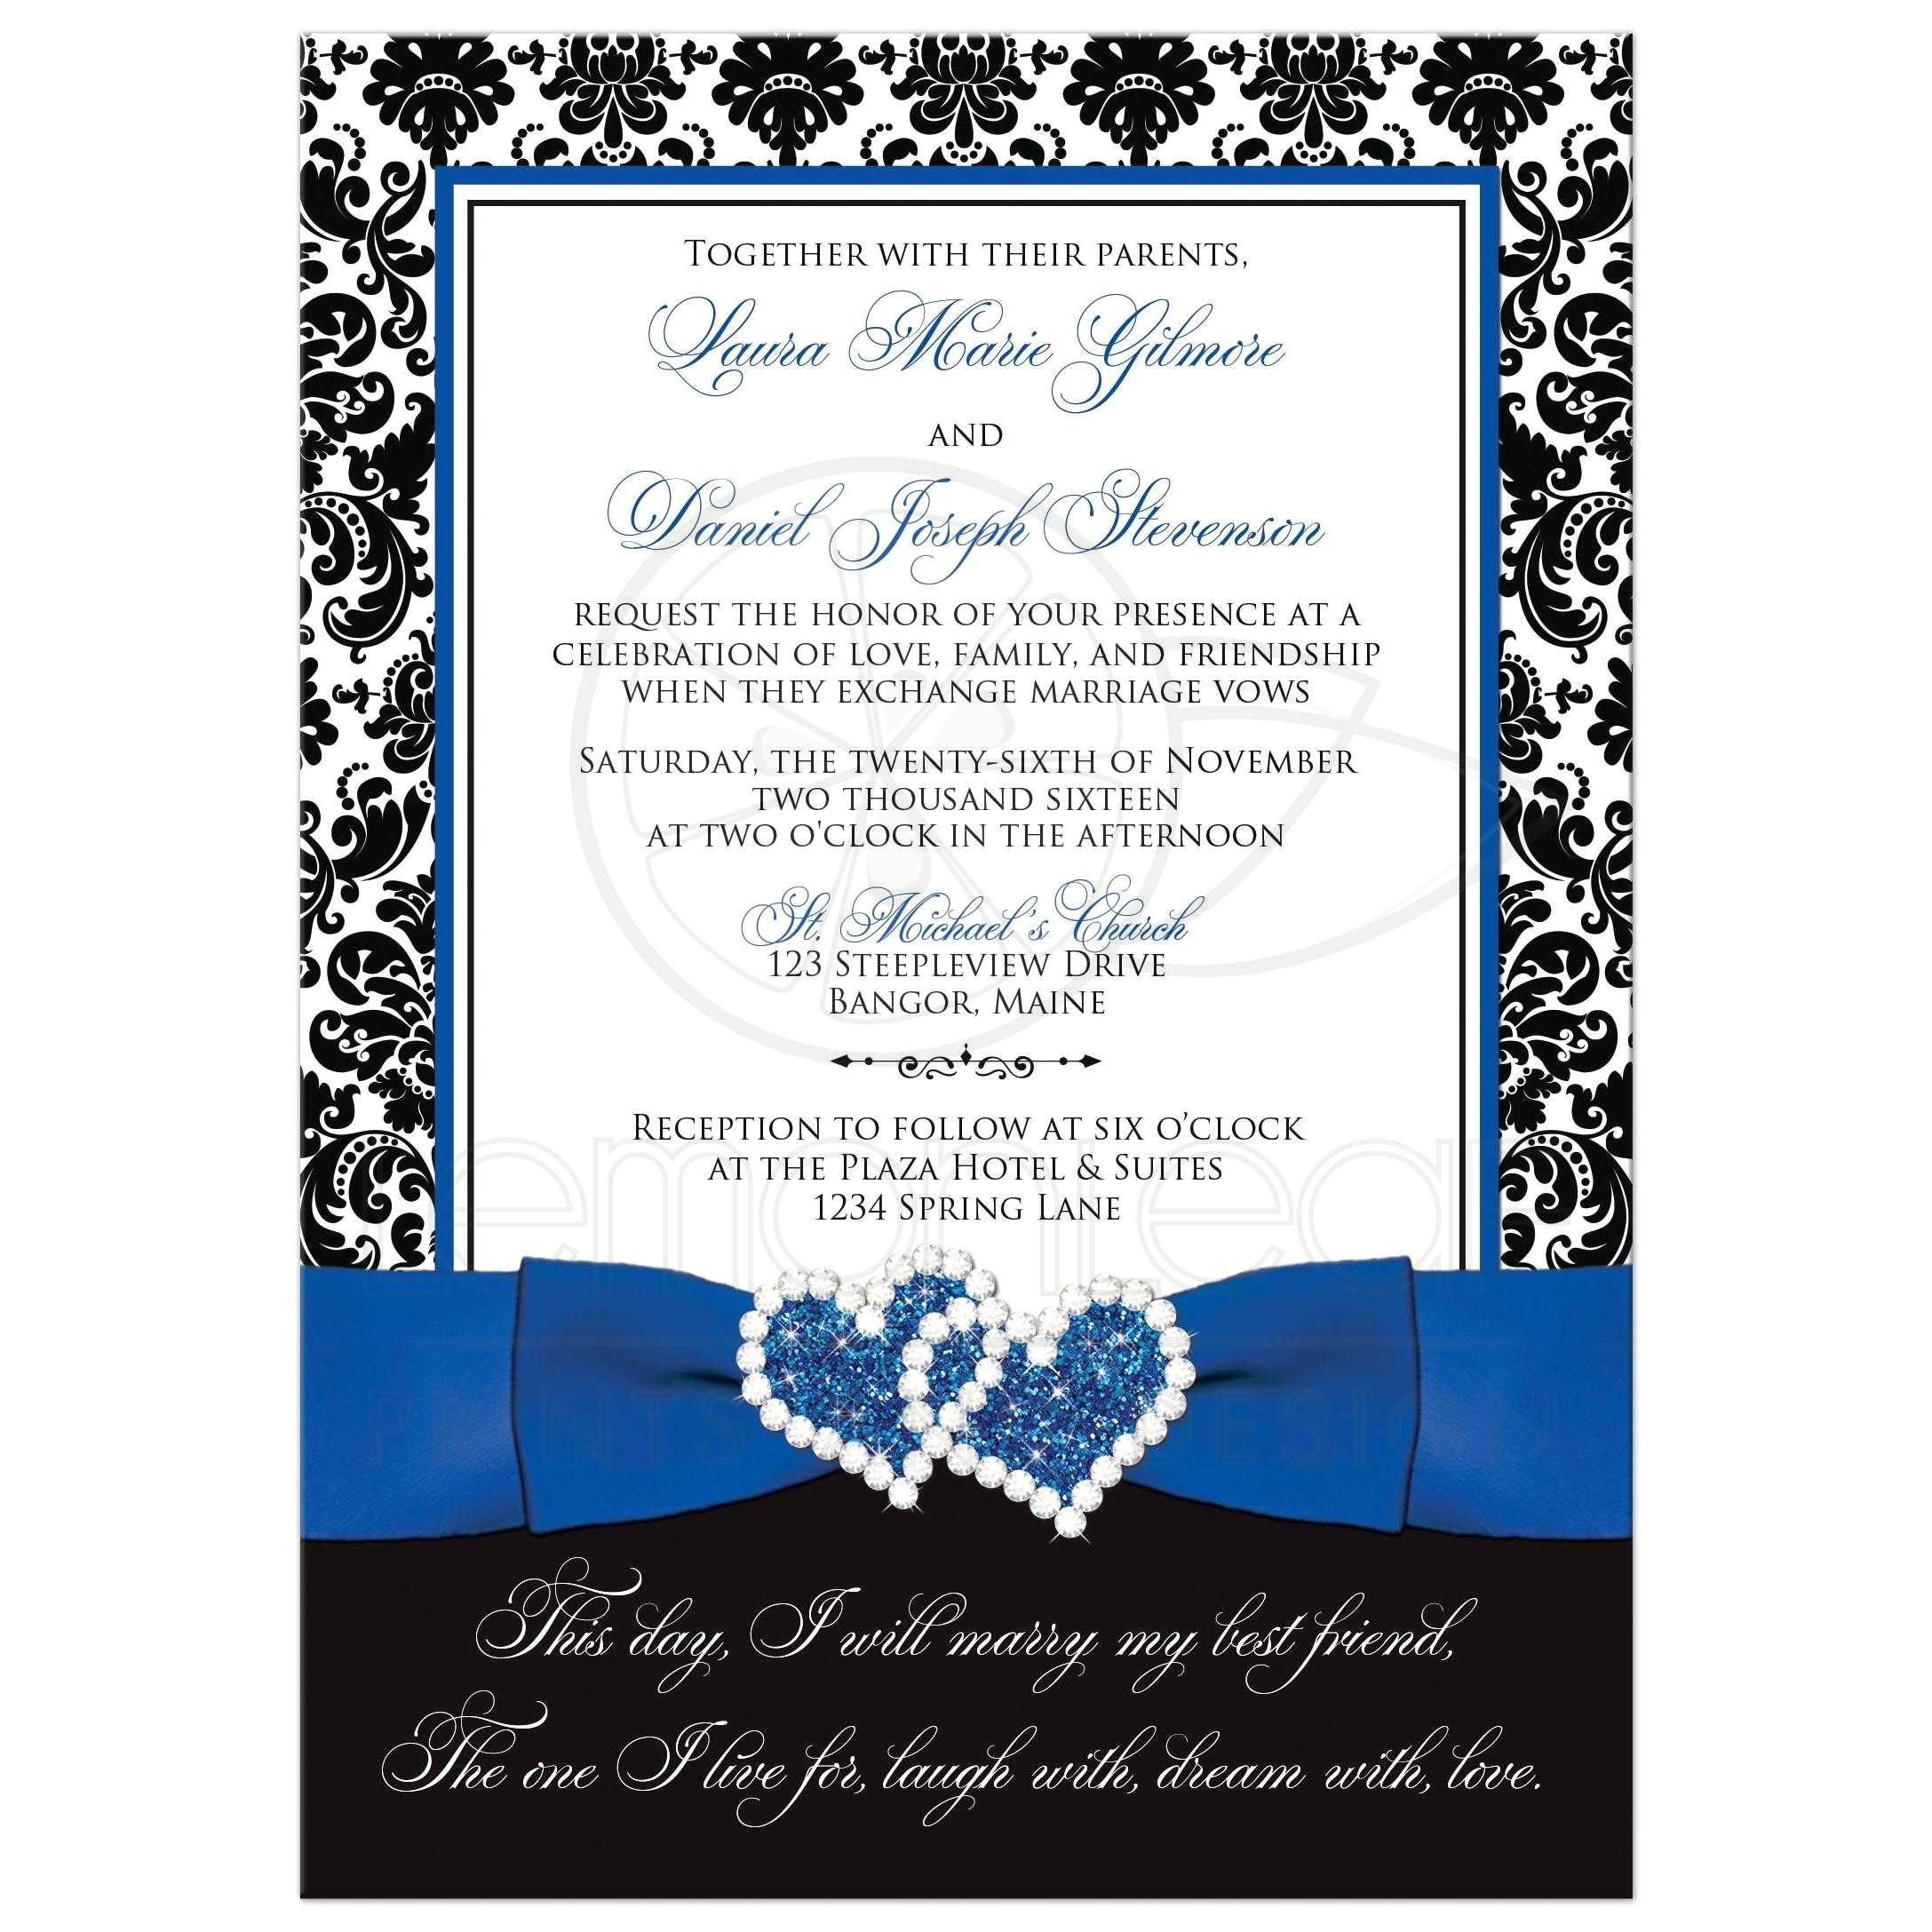 wedding invitation optional photo royal blue white black damask printed ribbon jeweled joined hearts